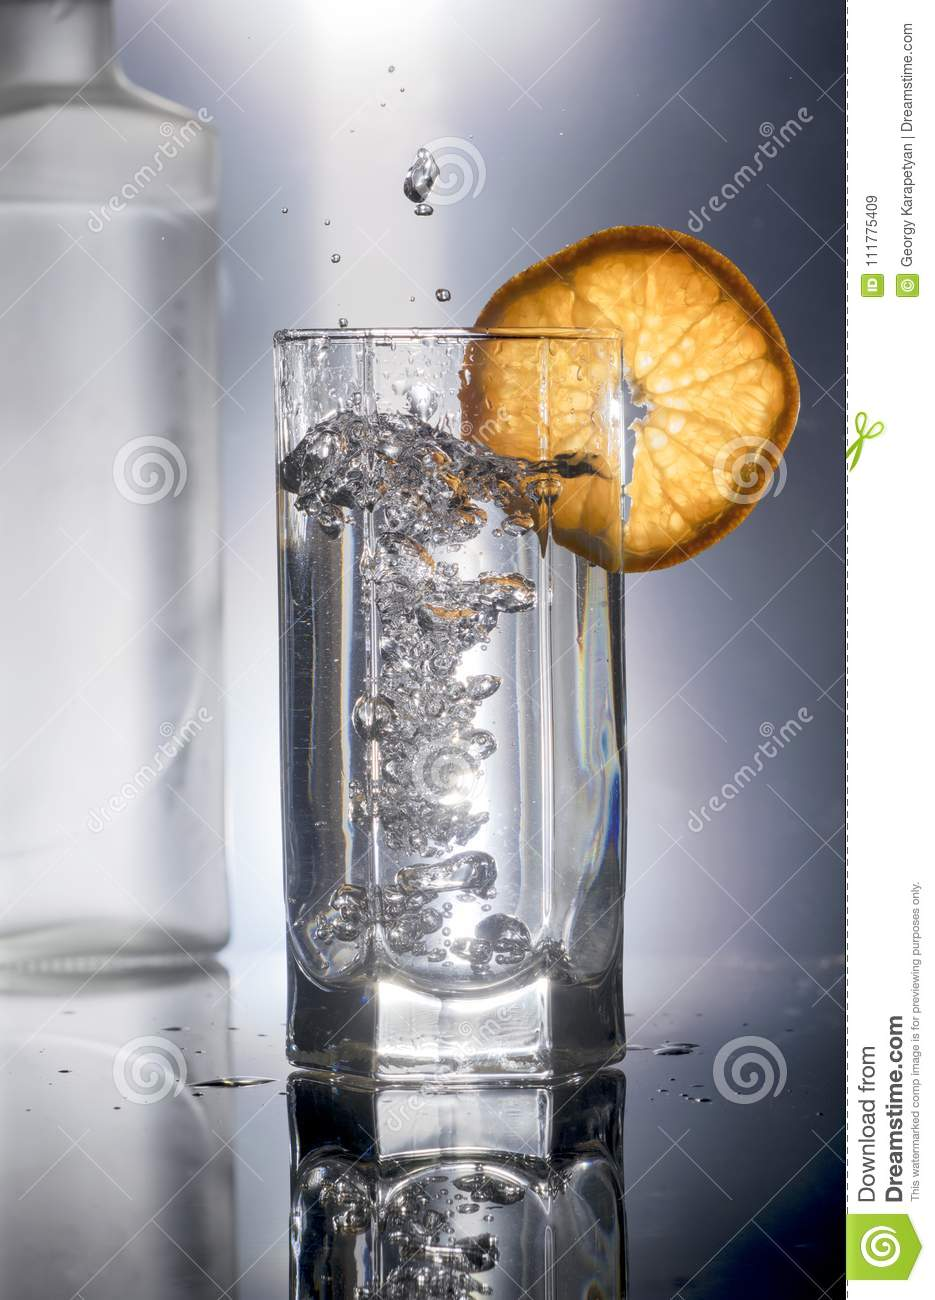 A glass of vodka and a bottle